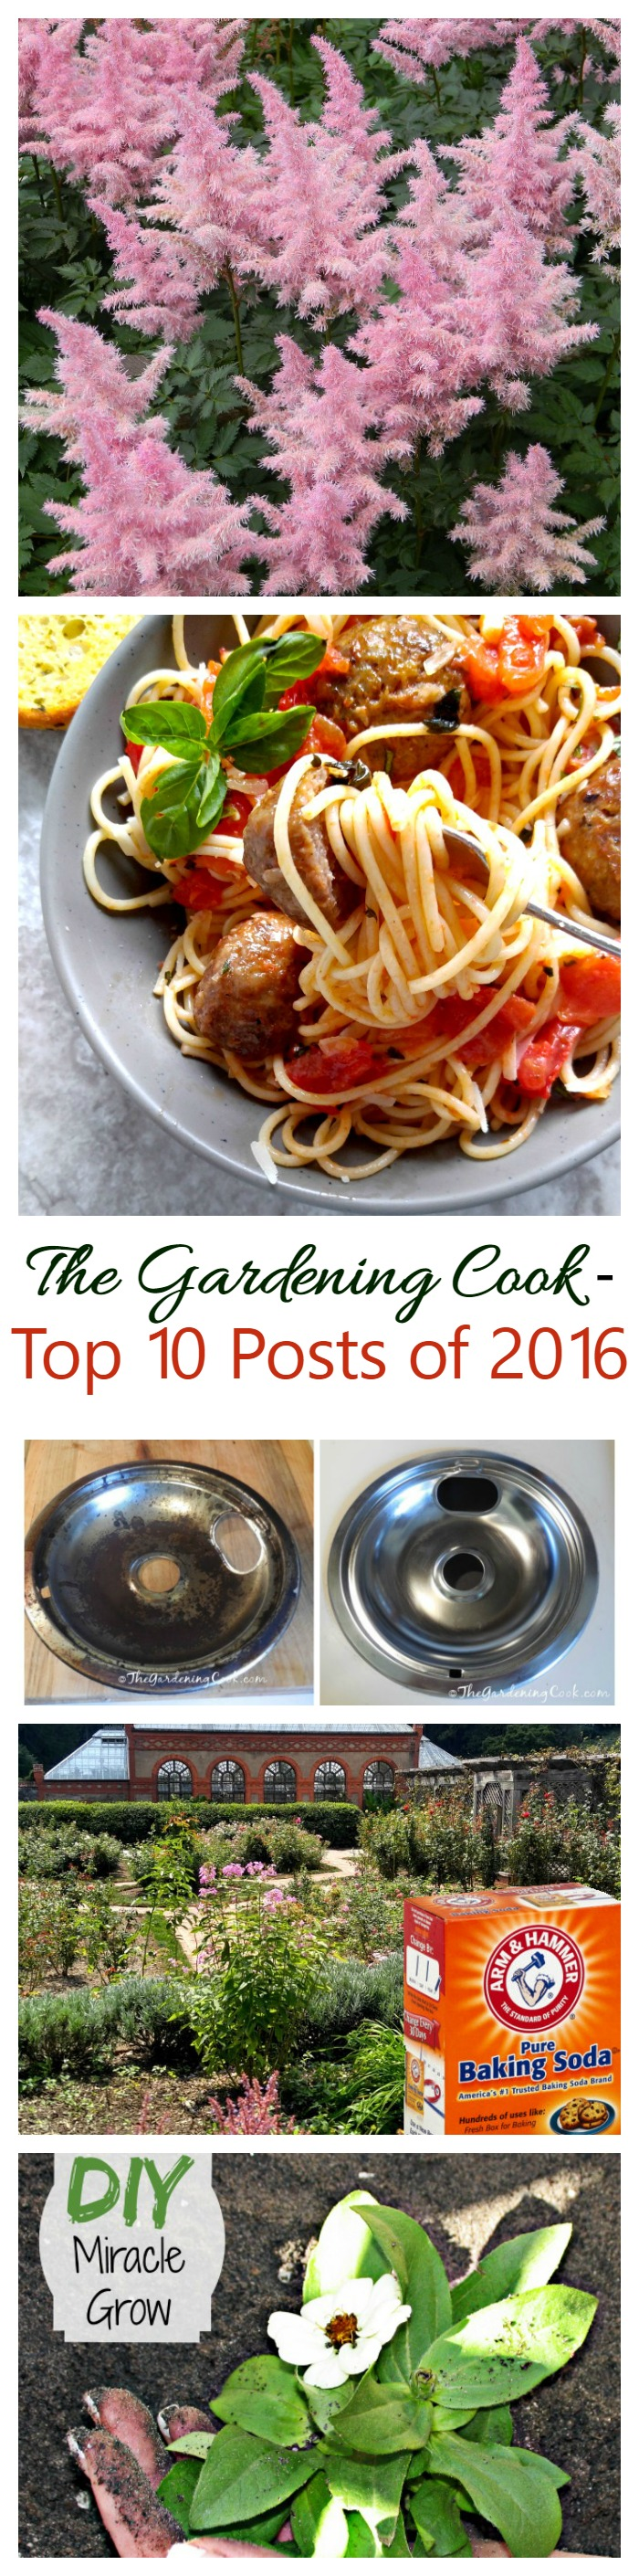 See what made the list of the most popular posts of 2016 for The Gardening Cook. This year, household tips, gardening tips and one great recipe made the top 10!